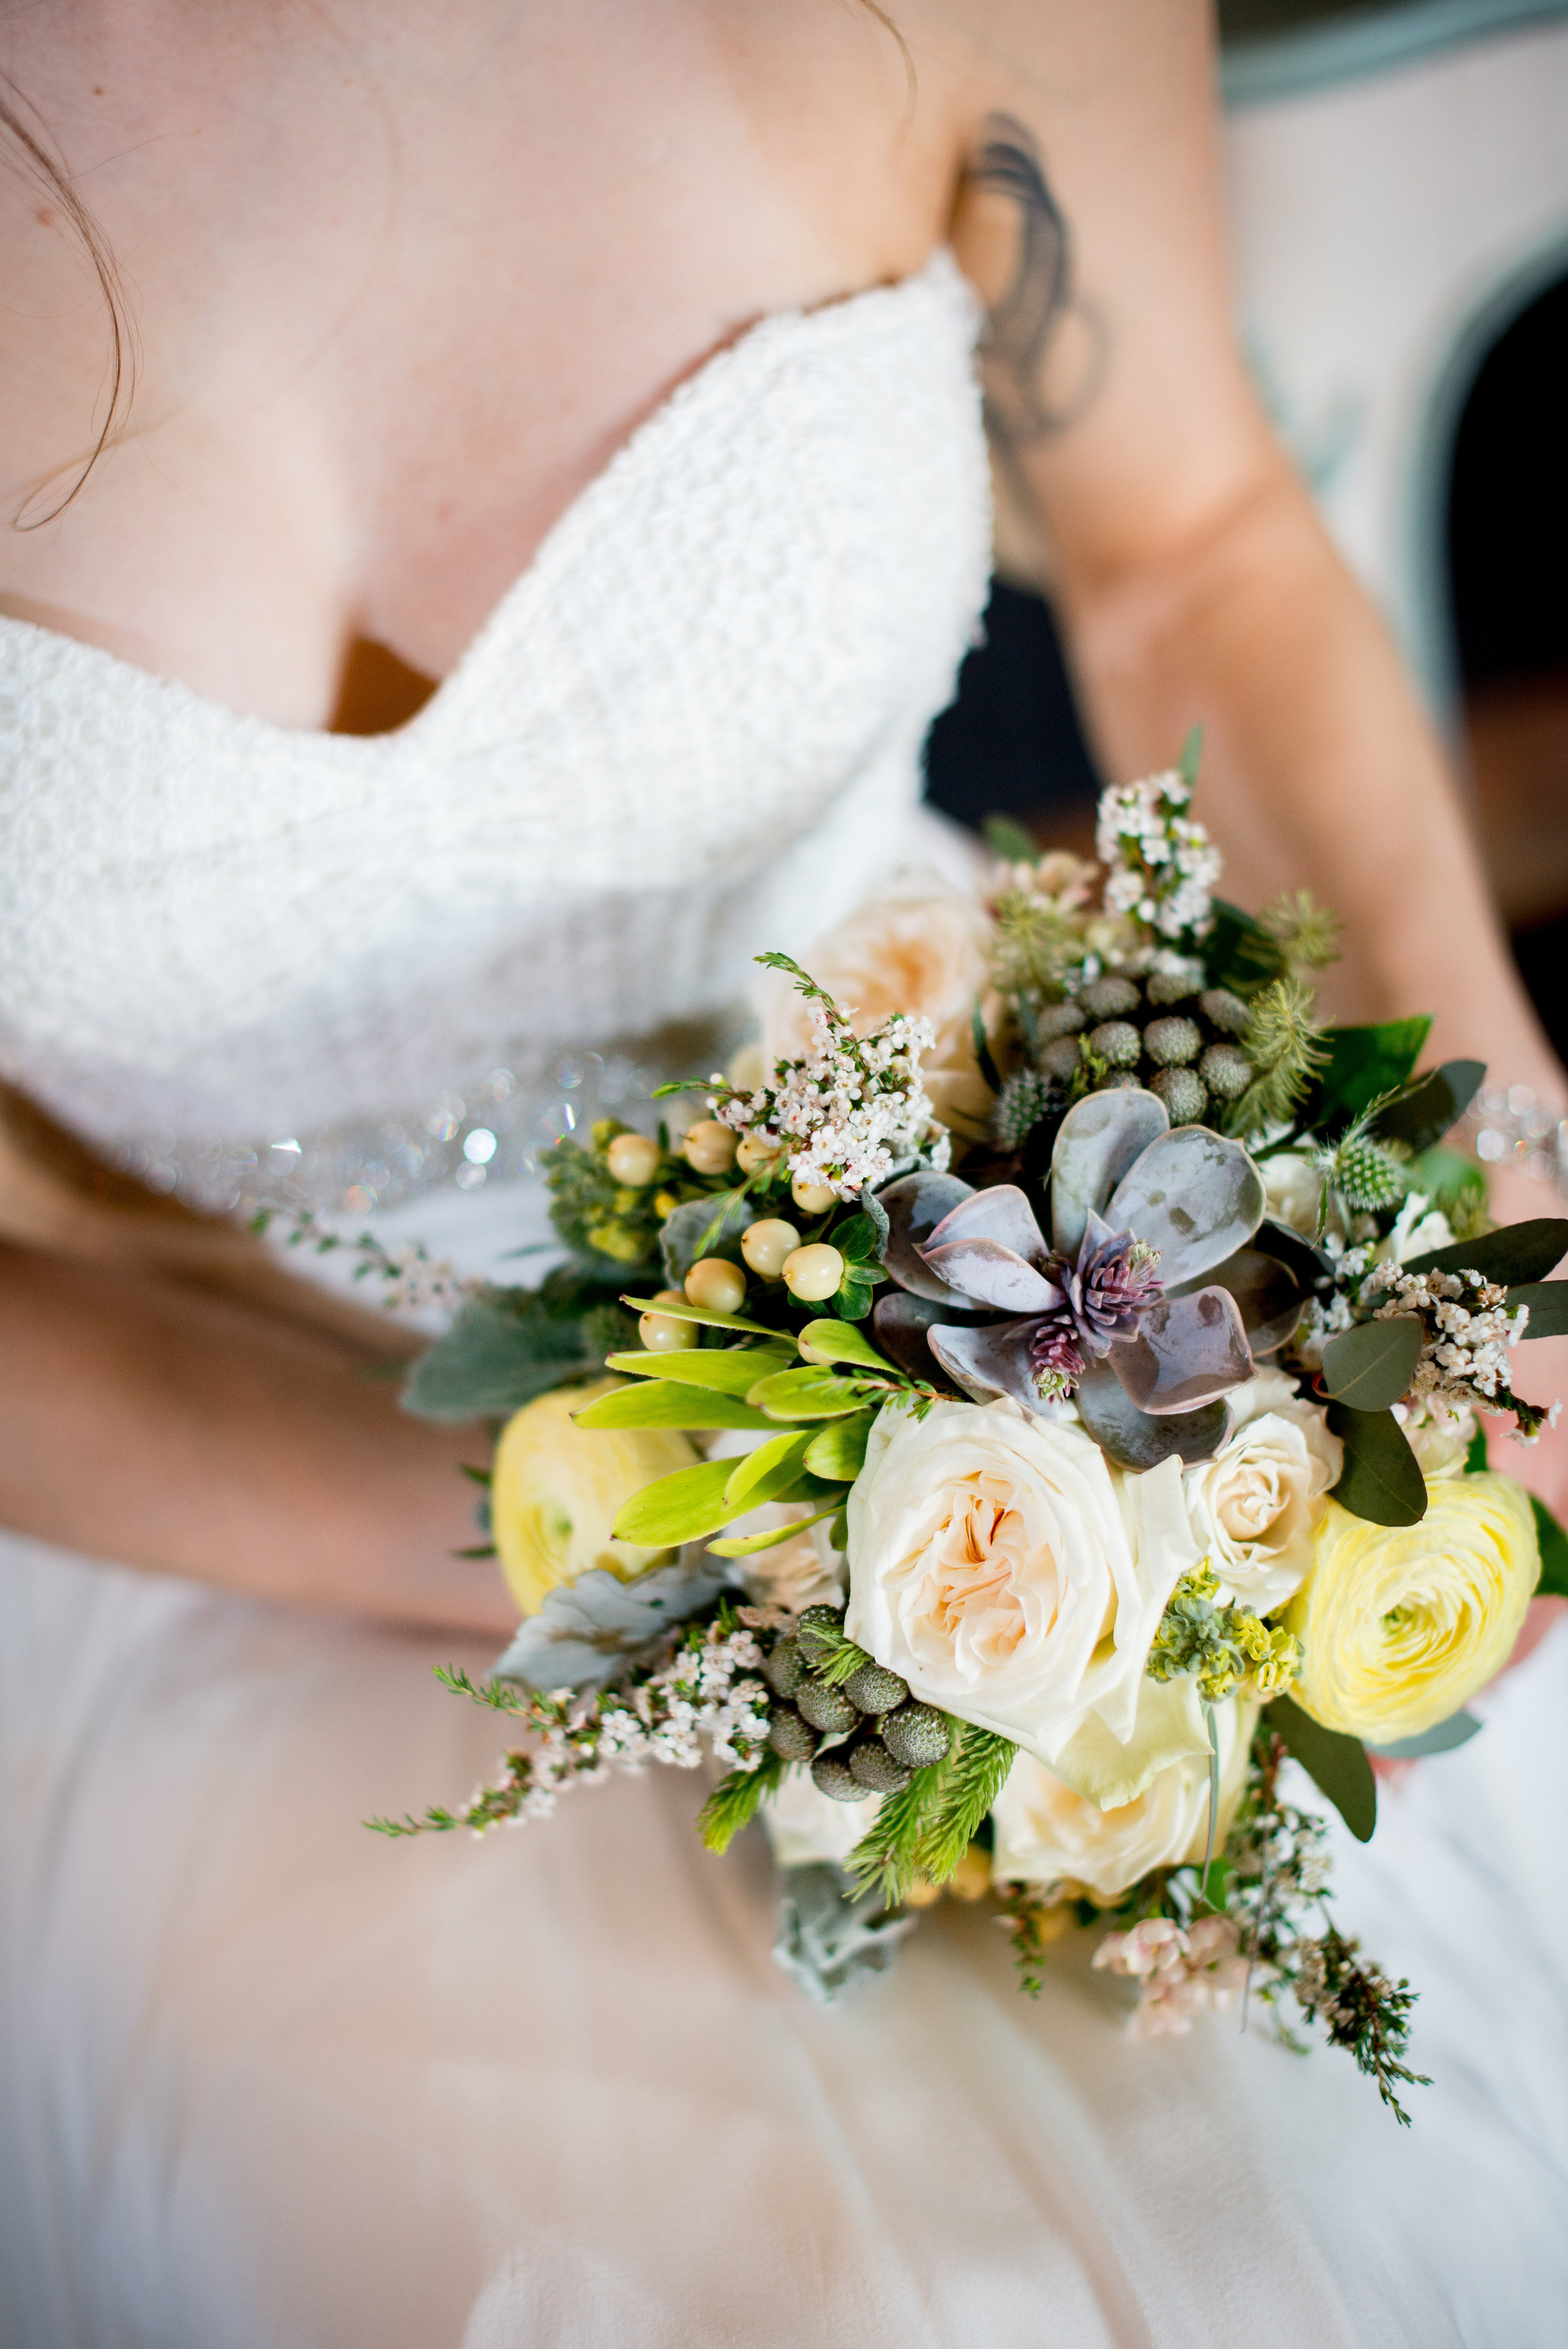 Anatomy Of Stunning Bridal Bouquets What Floral Ingredients Give